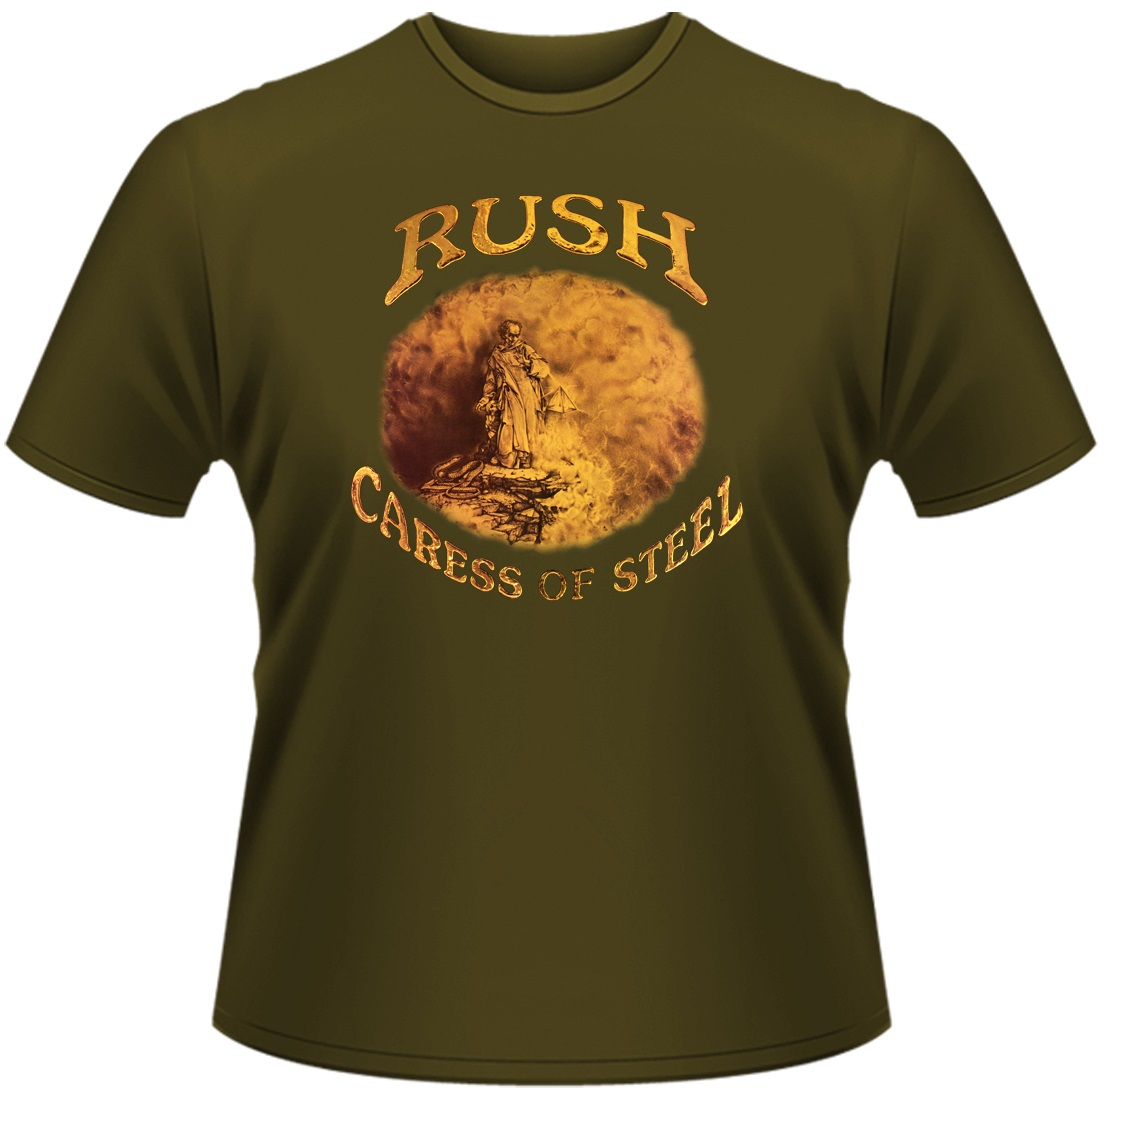 Rush-Caress-Of-Steel-T-Shirt-NEW-OFFICIAL